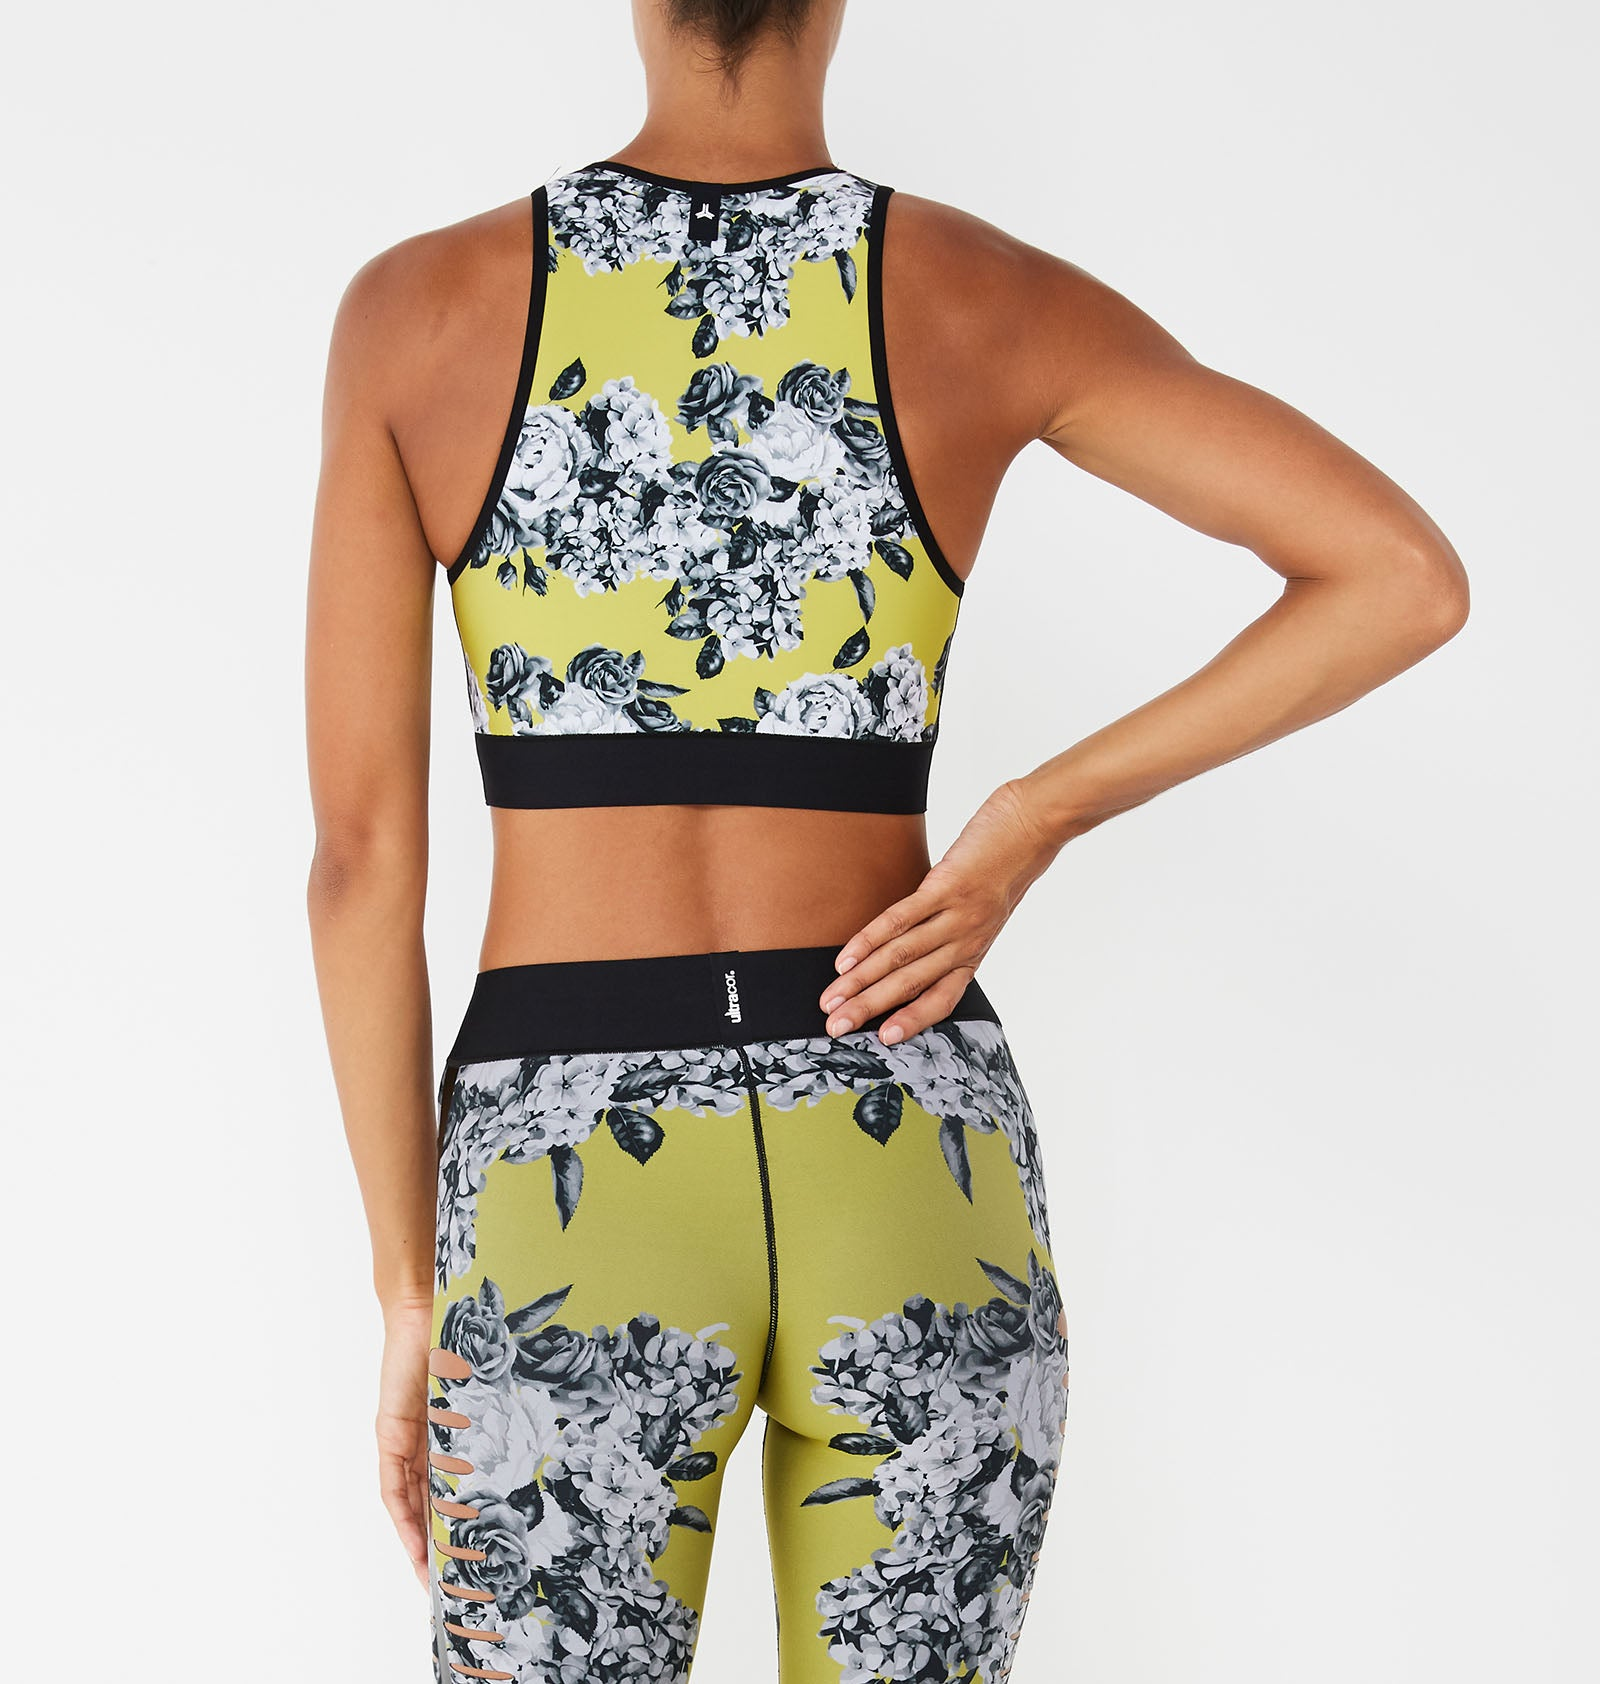 Altitude Silk Posey Print Crop Top - Exclusive Offer